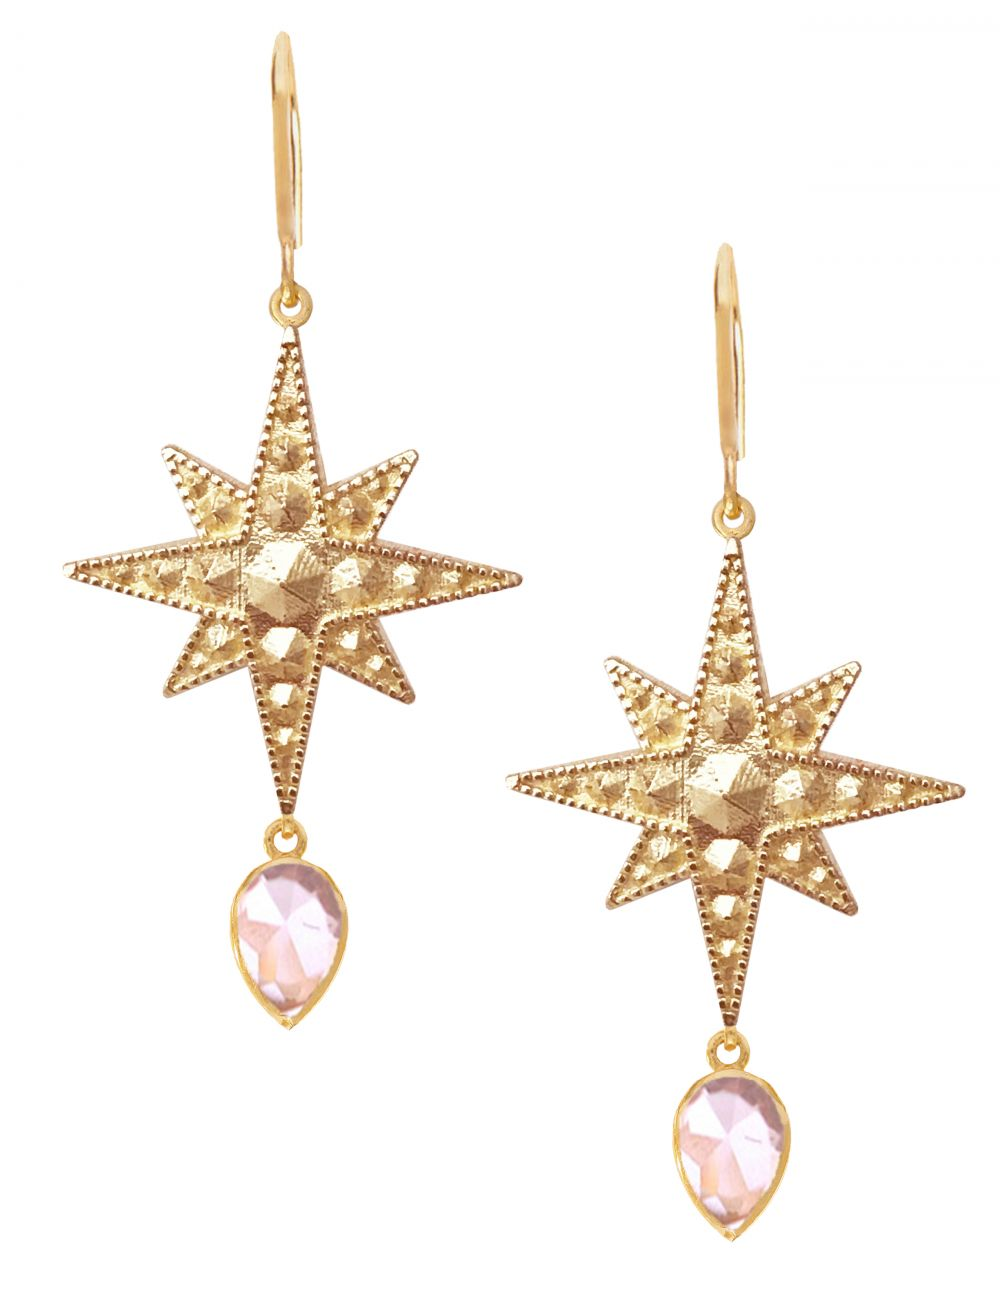 Sirius Earrings<br /><i><small>18K Gold Plated with Rose Quartz</small></i><br /> - Eddera